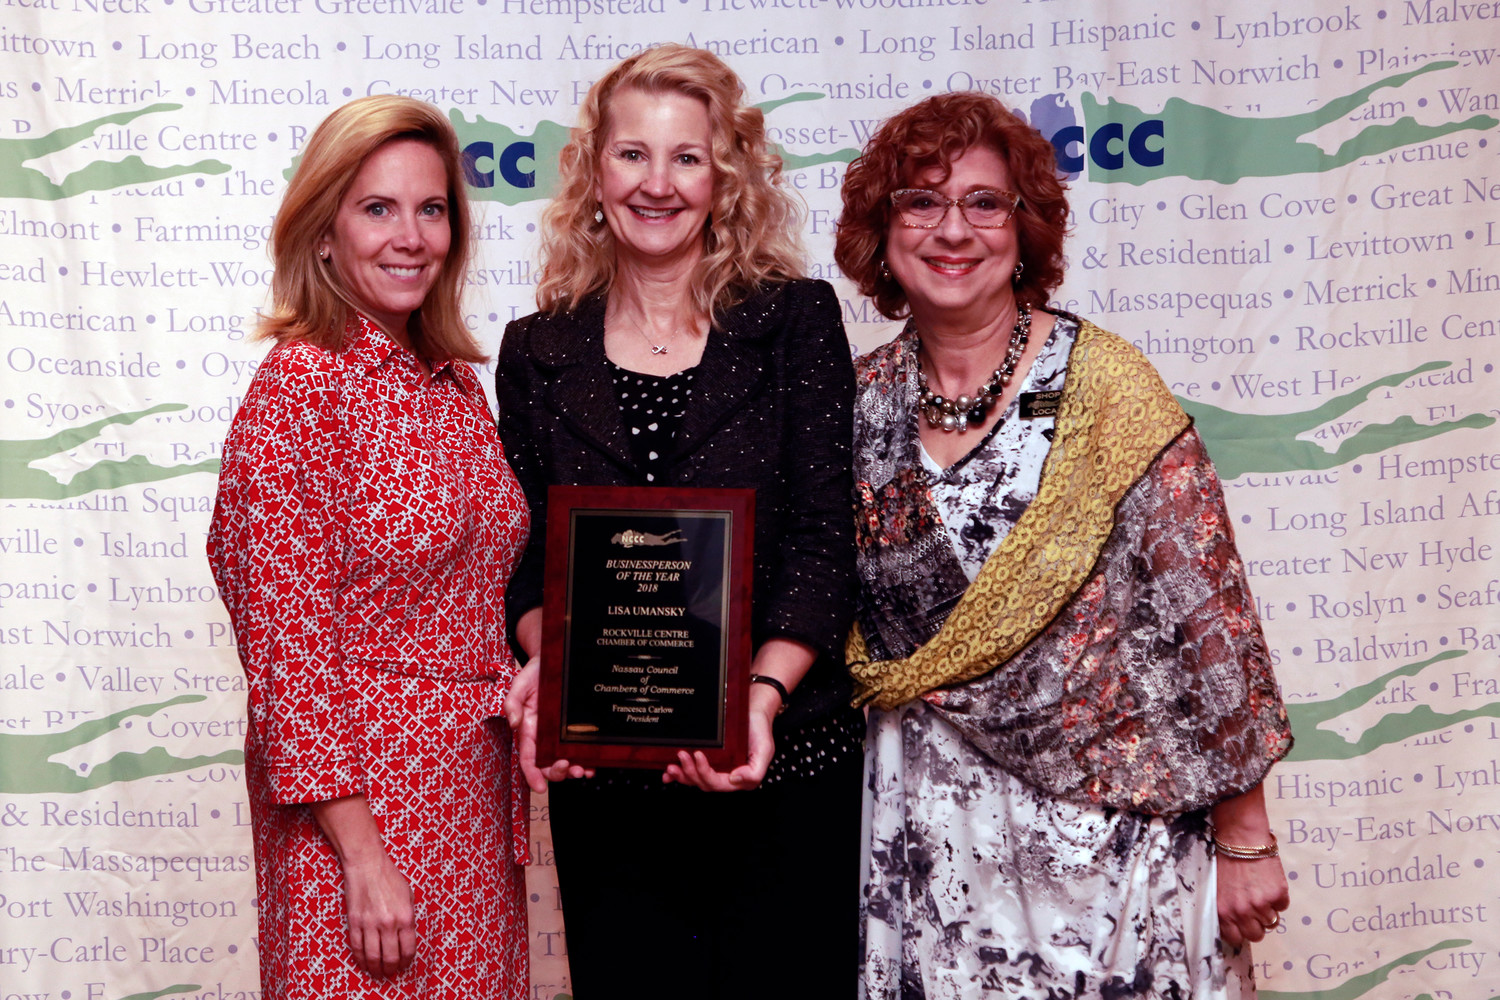 Lisa Umansky, owner of Polka Dot Pound Cake, center, was named Rockville Centre's Businessperson of the Year. She was joined by Hempstead Town Supervisor Laura Gillen and Francesca Carlow, president of the Nassau Council of Chambers of Commerce.